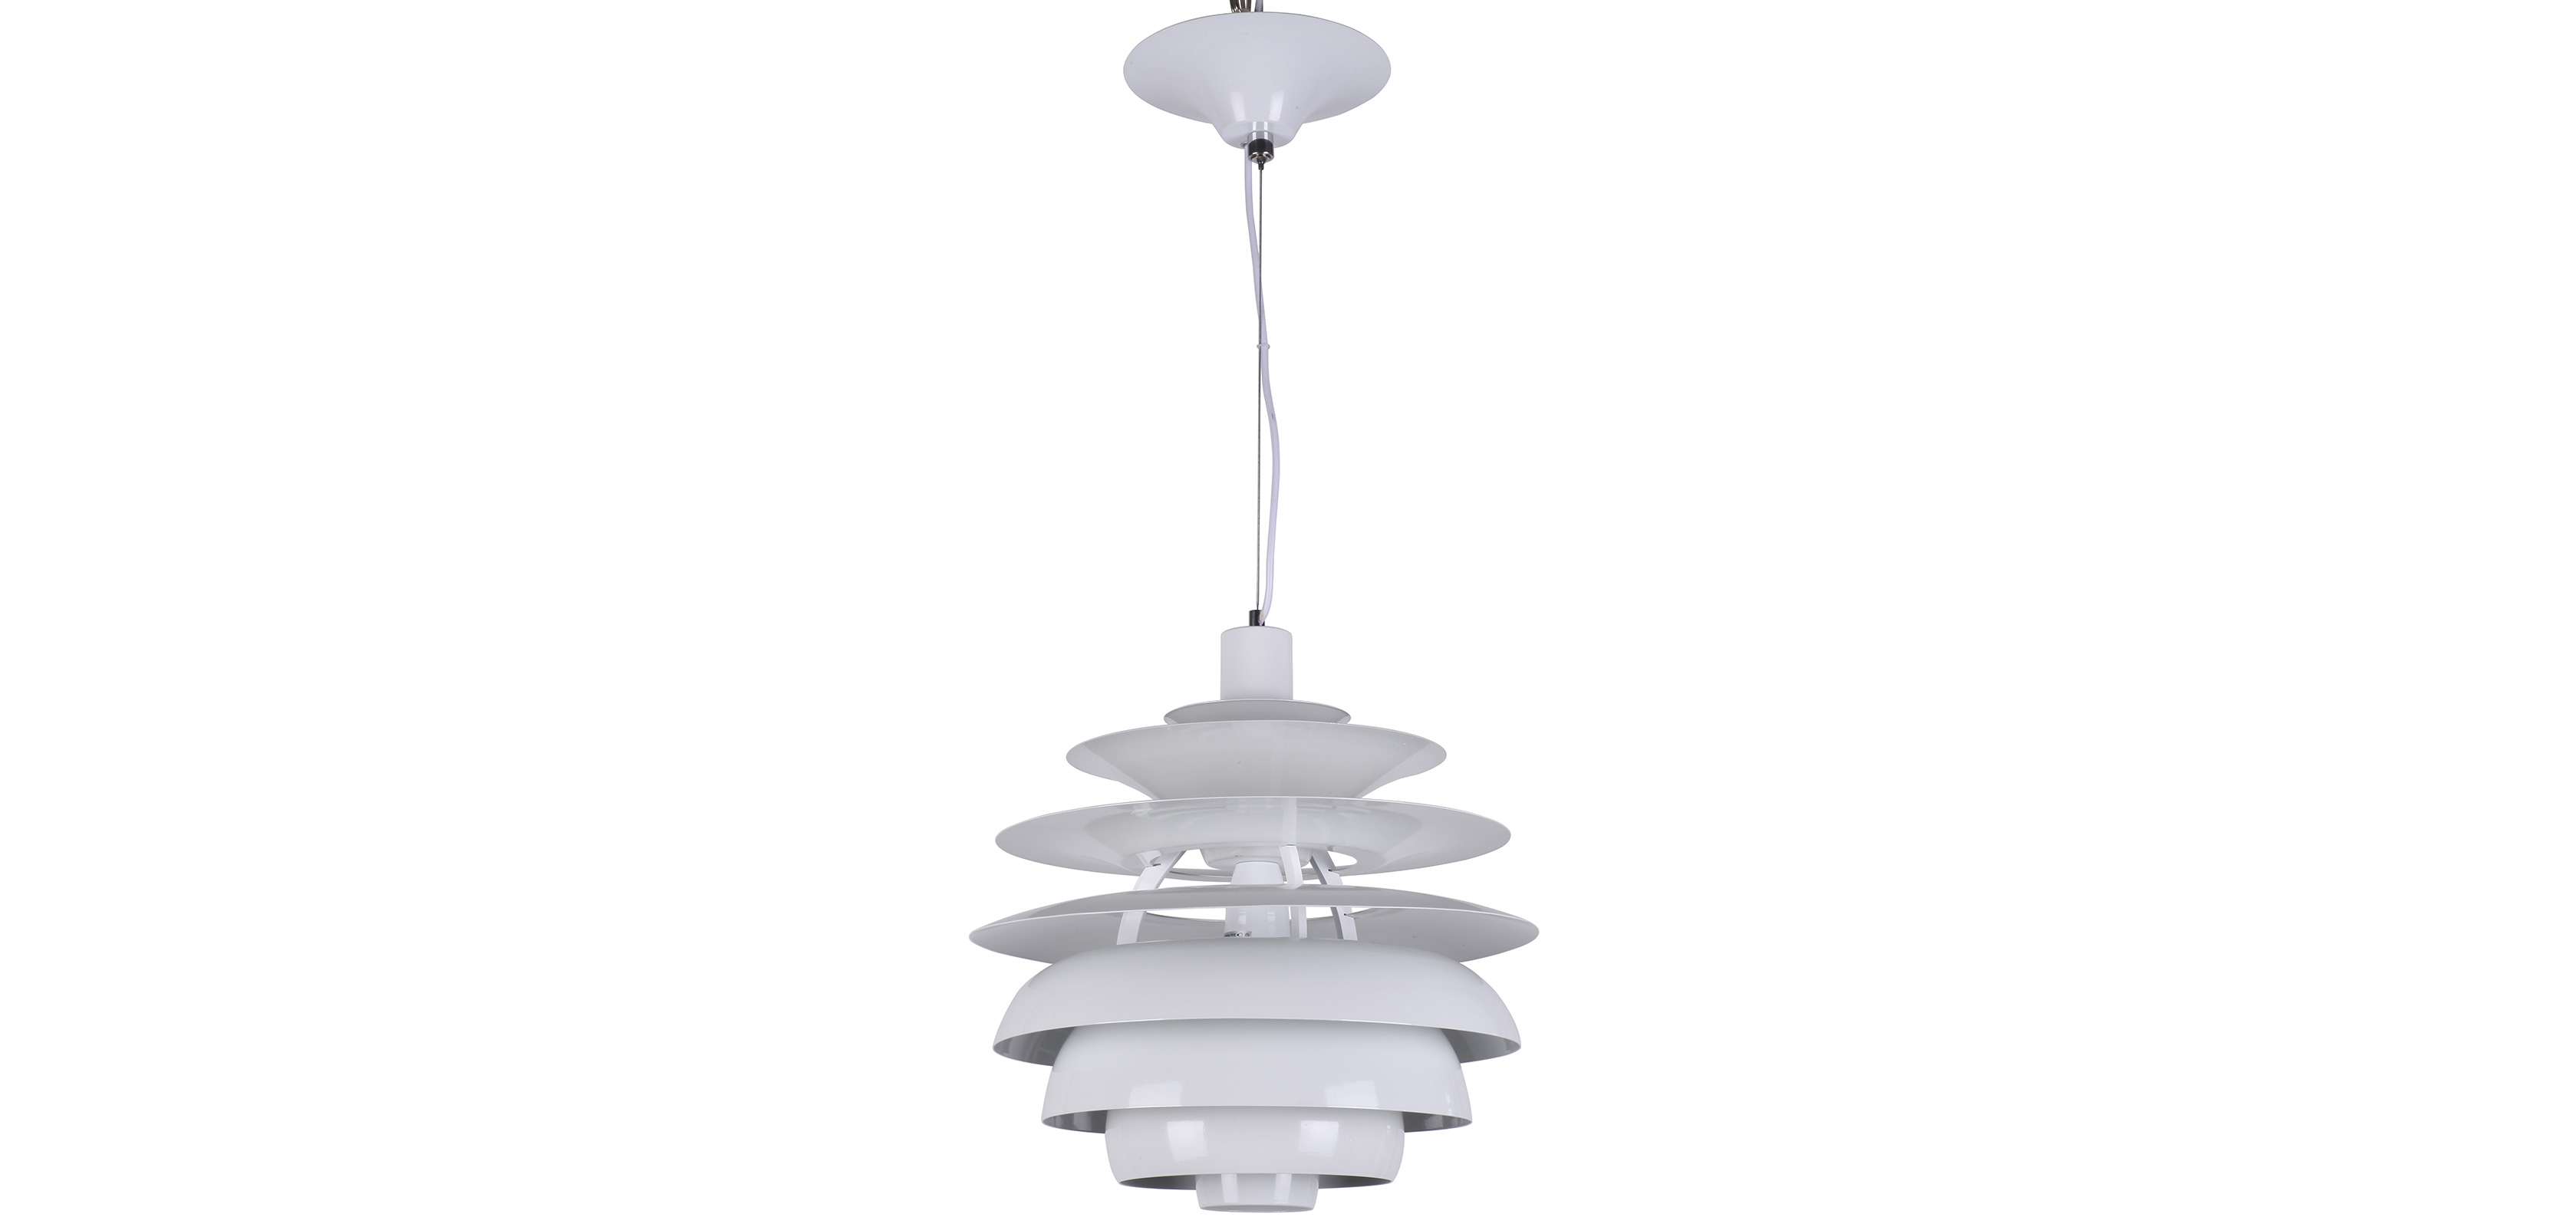 Lampe suspension snow ball style poul henningsen for Suspension aluminium cuisine